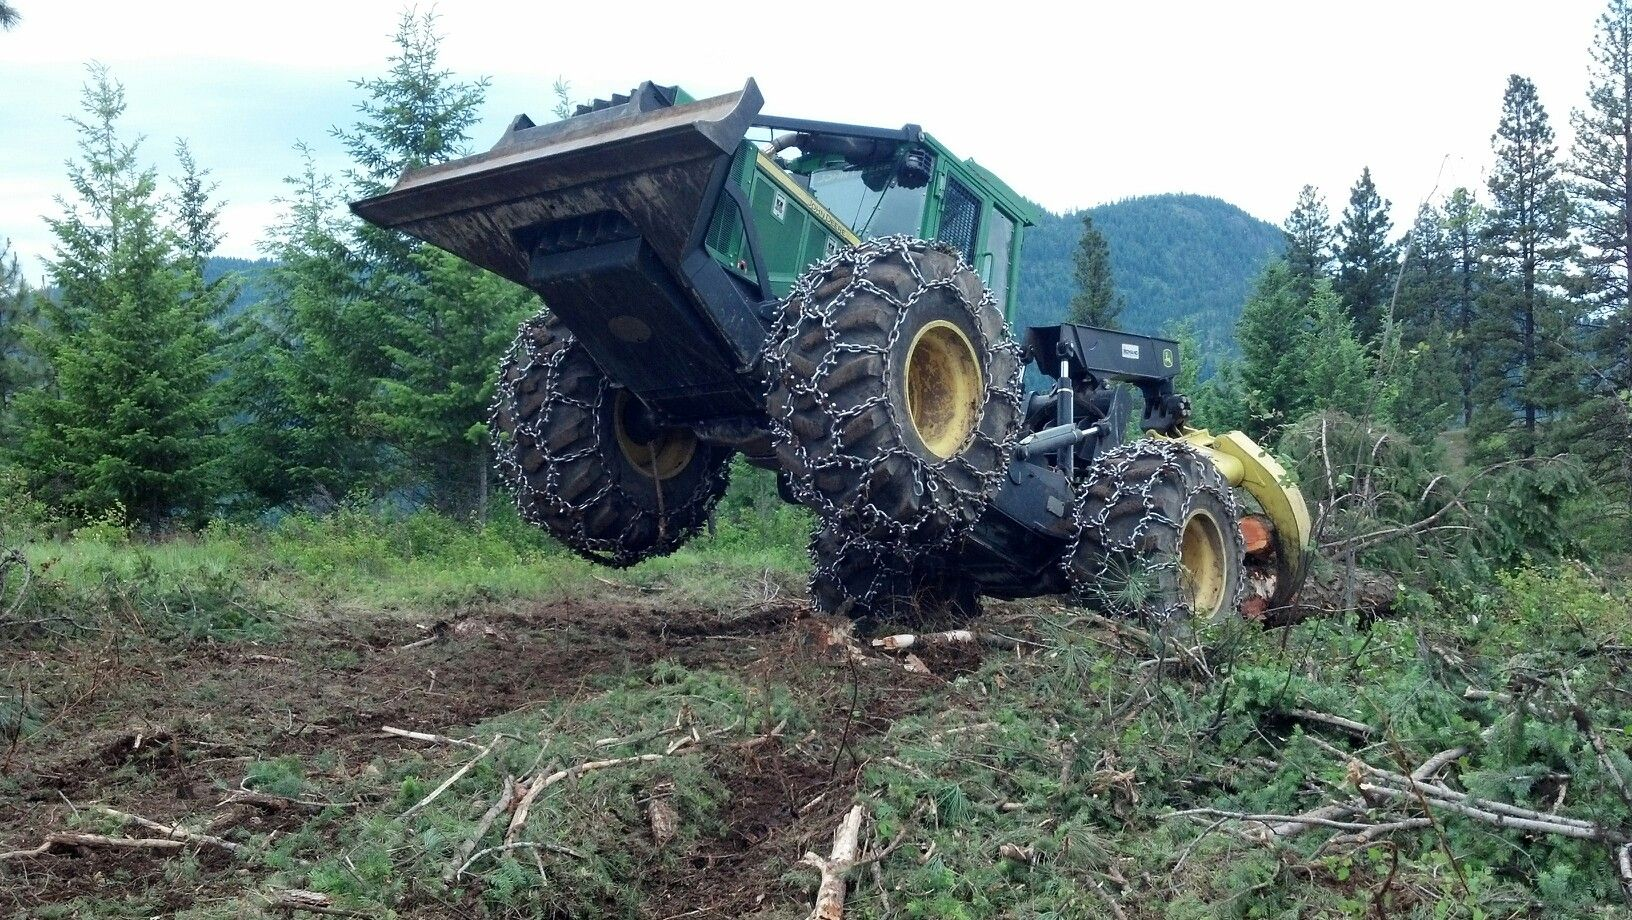 Tree farmer skidder for sale in ny - Wheelie